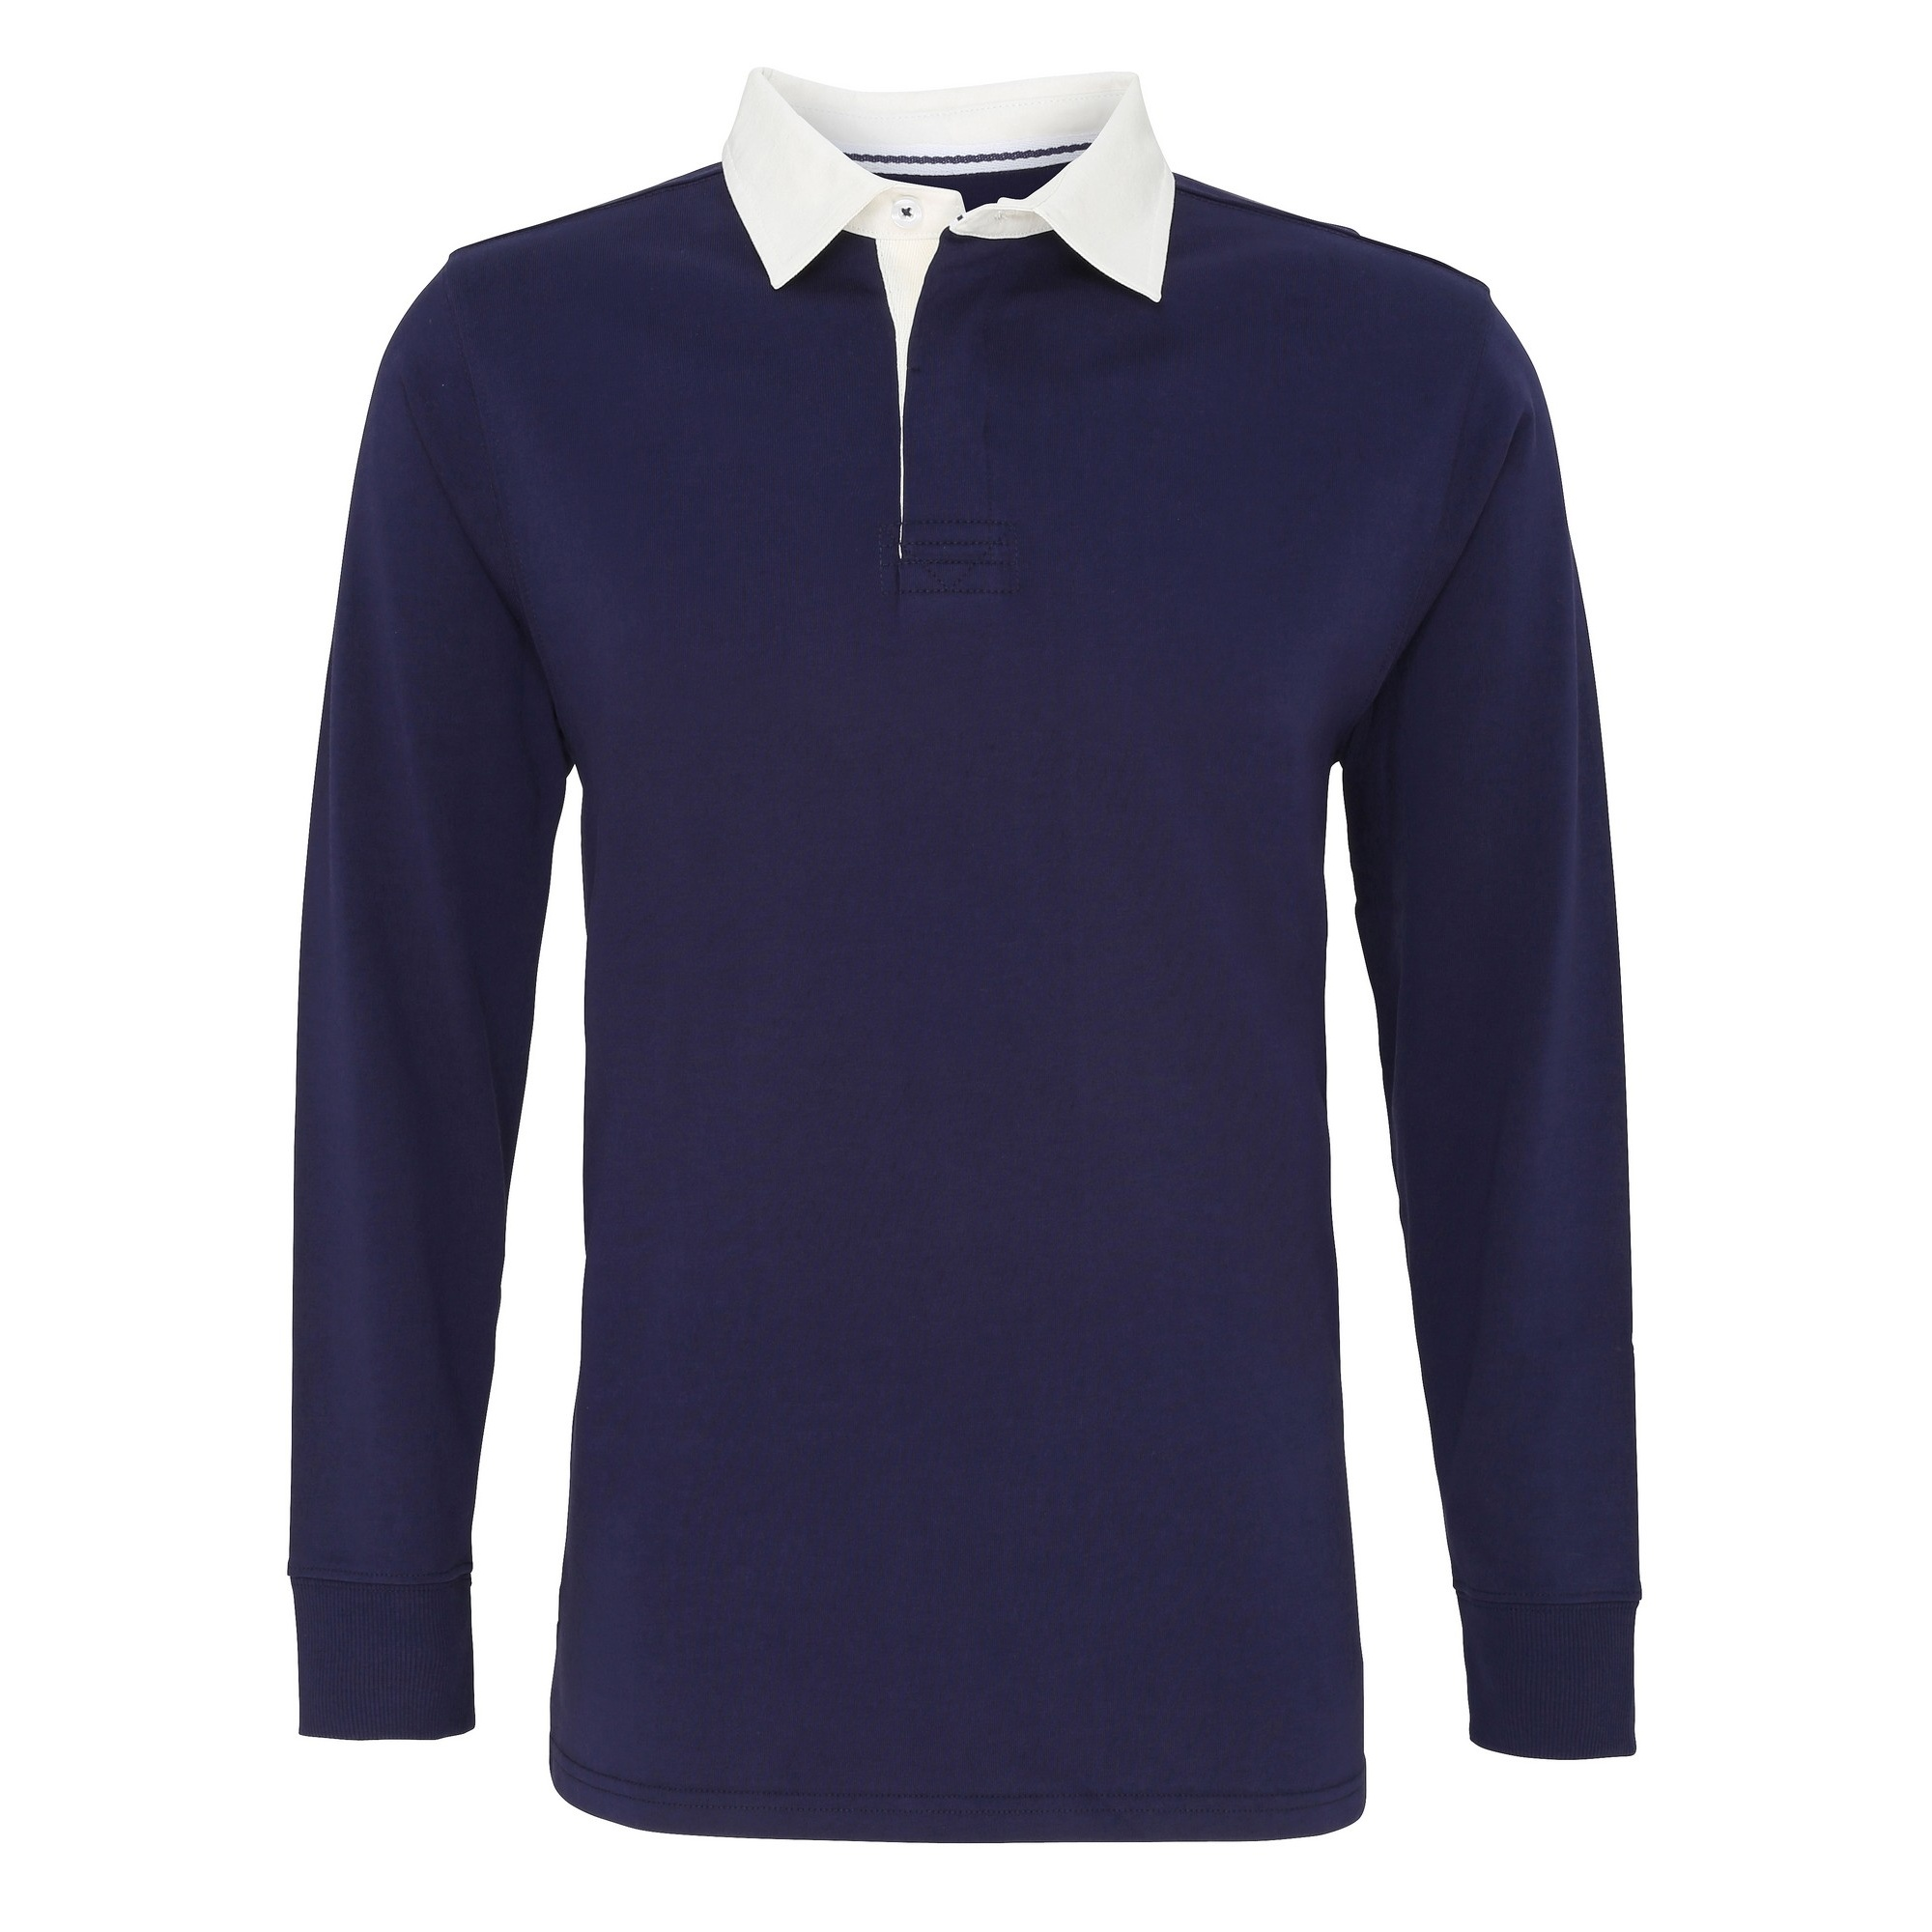 Asquith & Fox Mens Classic Fit Long Sleeve Vintage Rugby Shirt (M) (White)